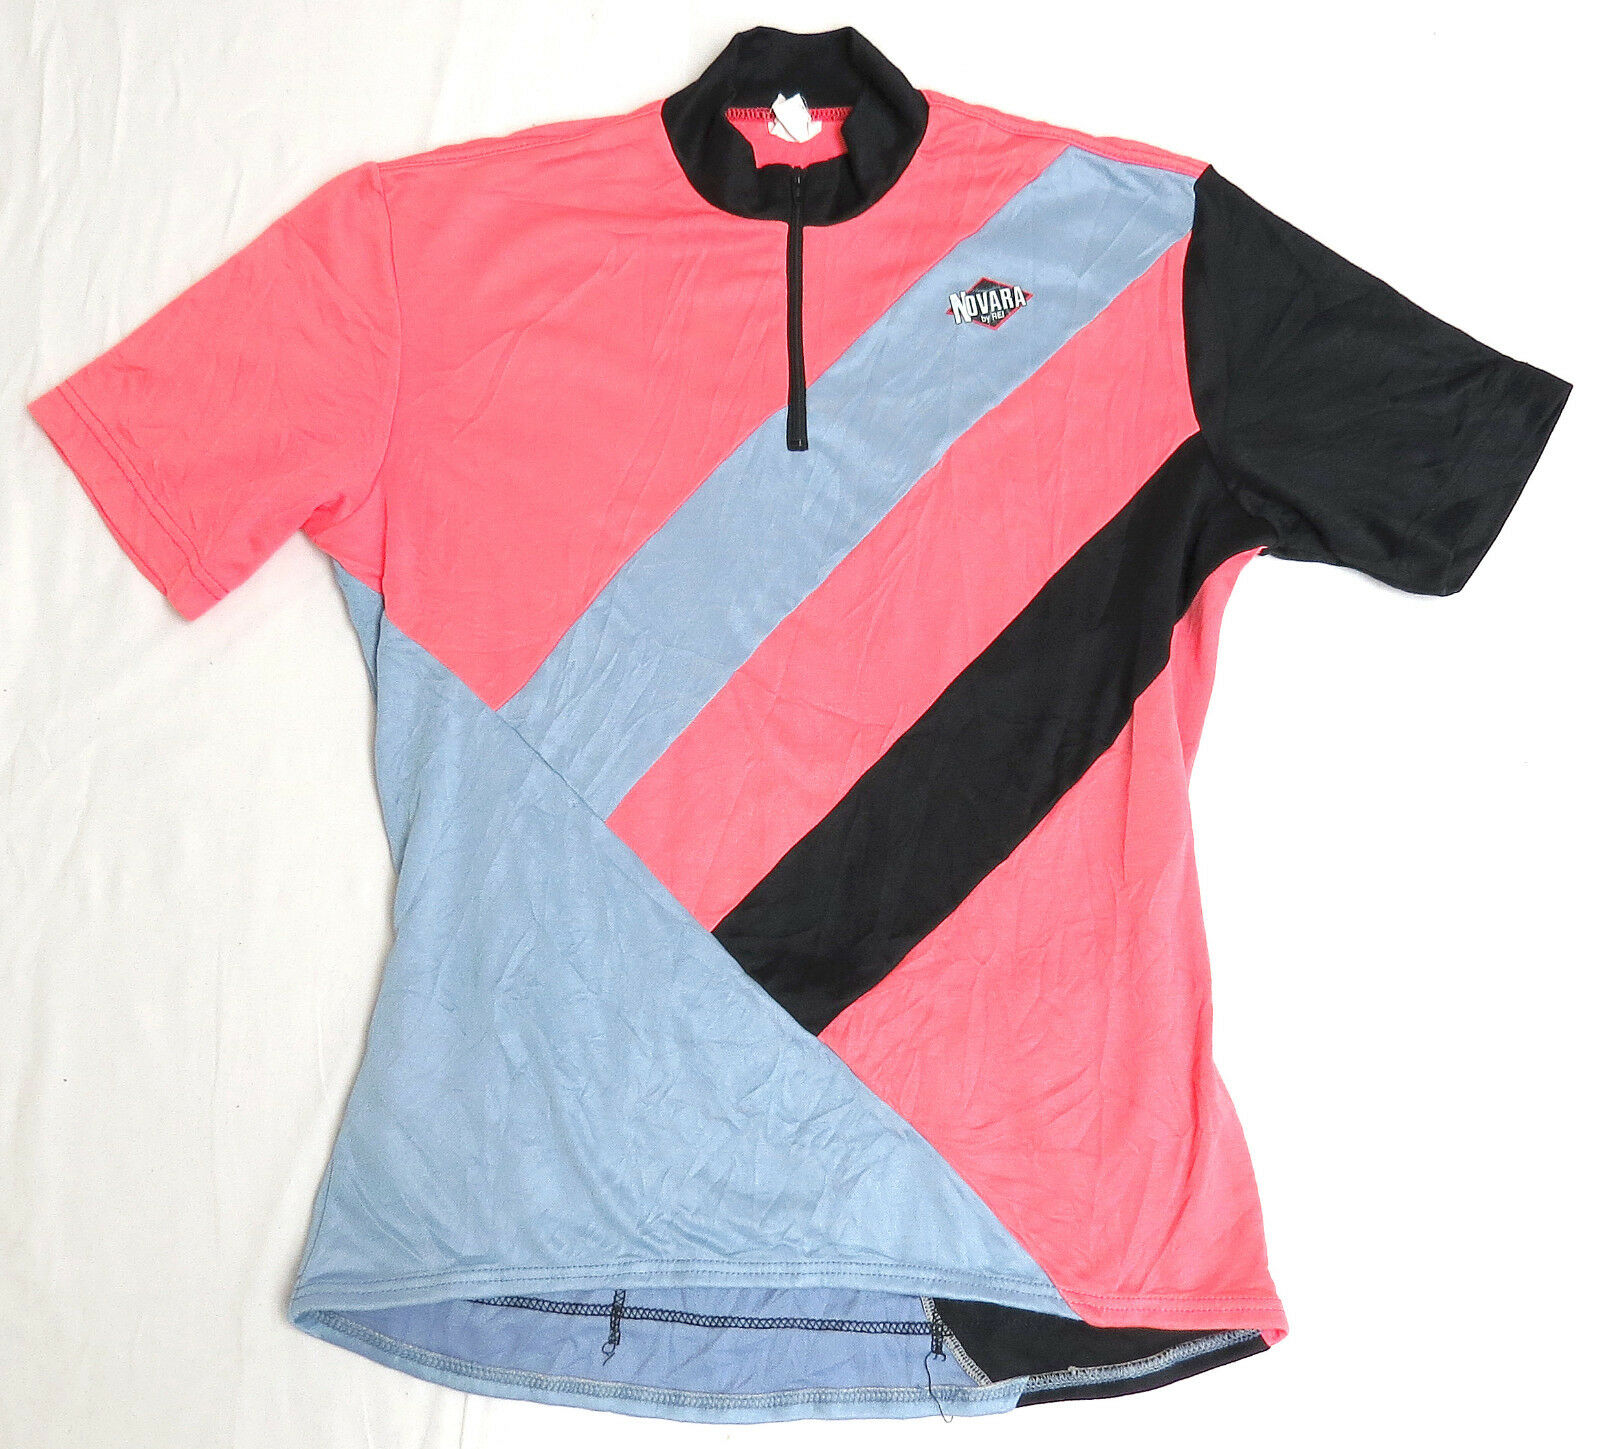 Vtg REI NOVARA Cycling Jersey SMALL 90s  Bellwether bike neon pink rare  wholesale price